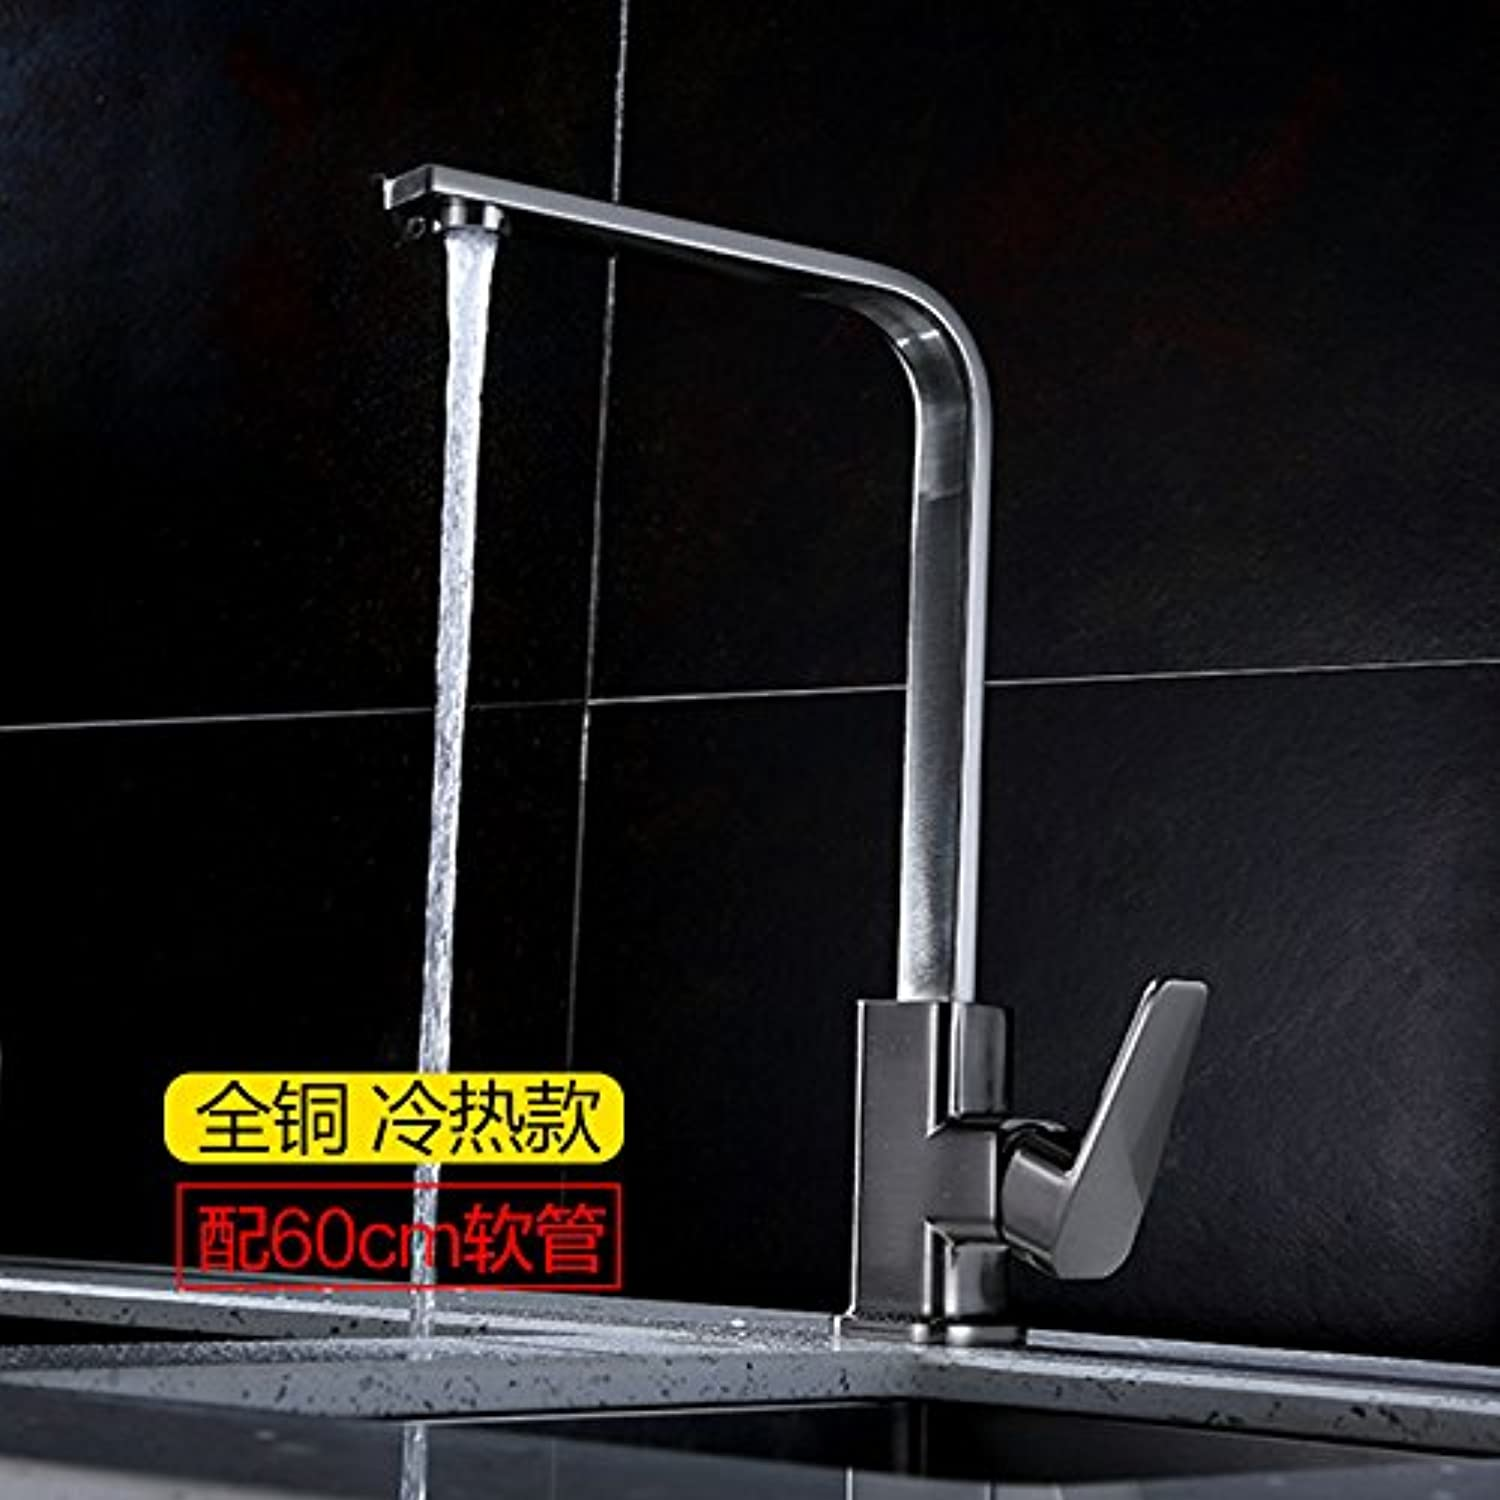 Lpophy Bathroom Sink Mixer Taps Faucet Bath Waterfall Cold and Hot Water Tap for Washroom Bathroom and Kitchen Square Tube Copper Hot and Cold Single Cold Plating Square Brush?A